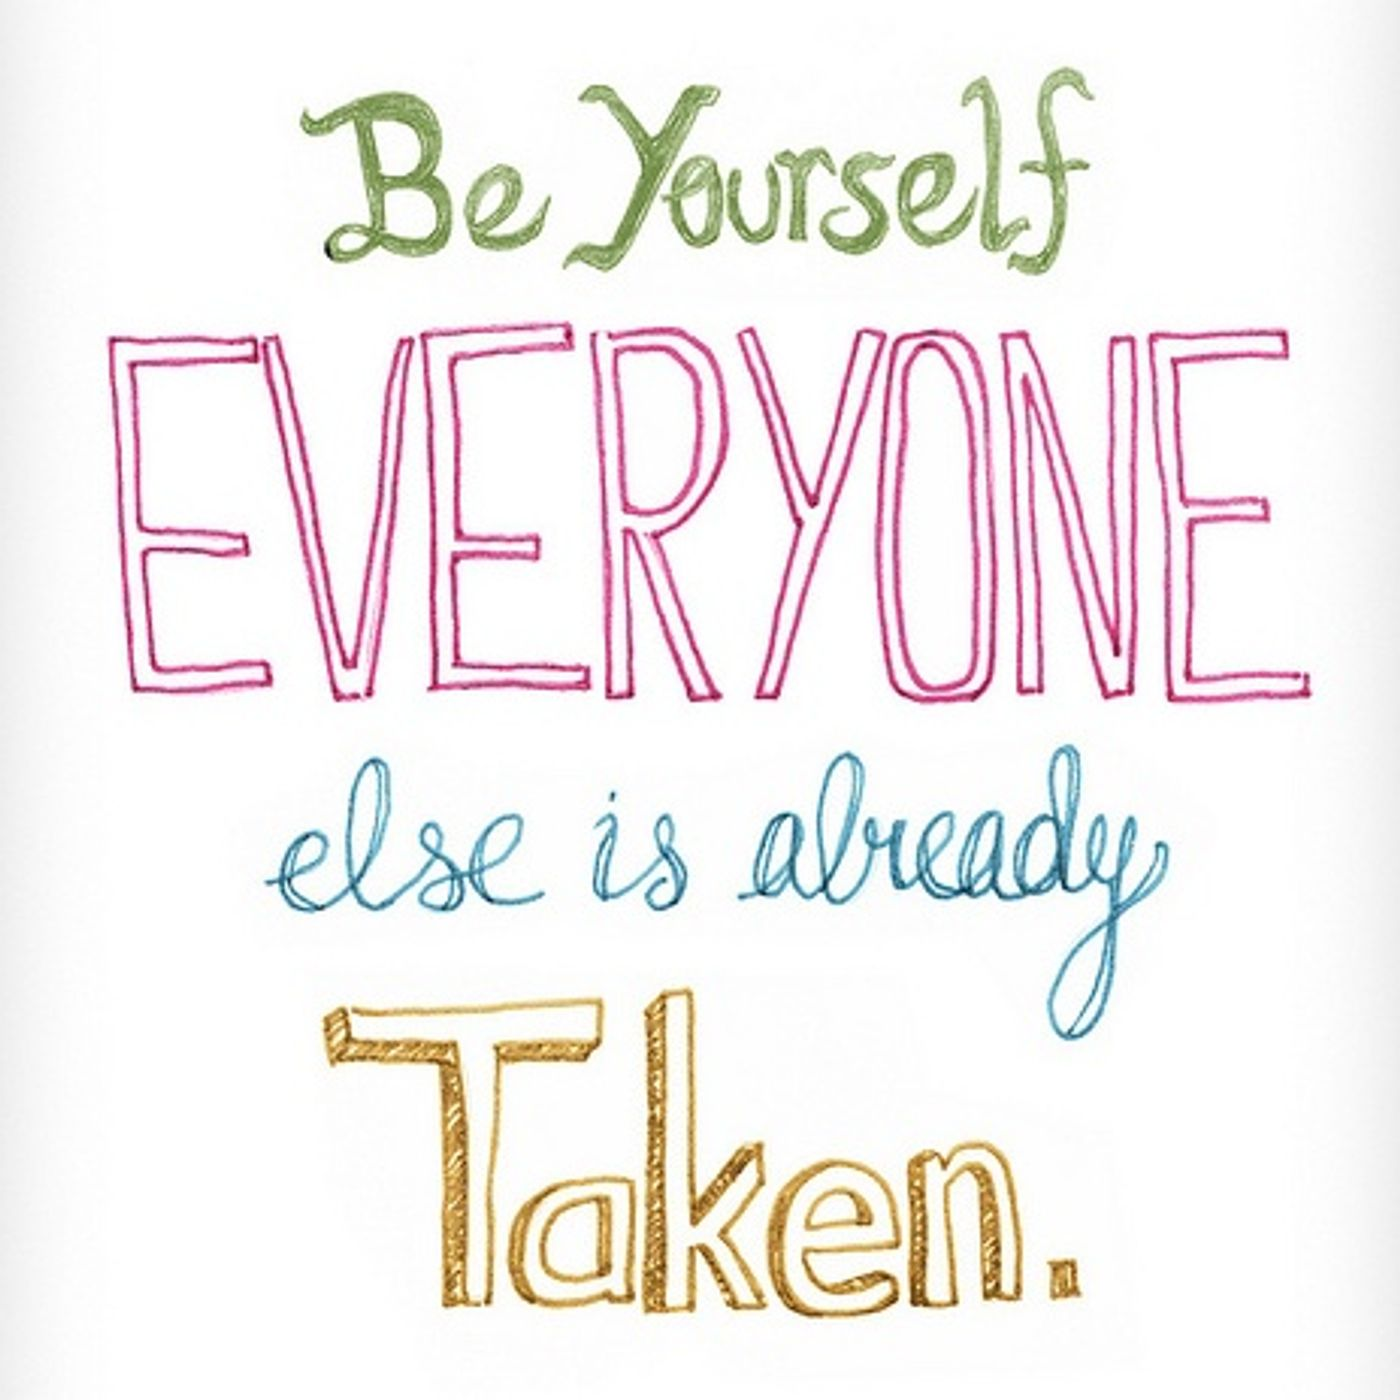 Be Yourself to Attract Your Ideal Clients